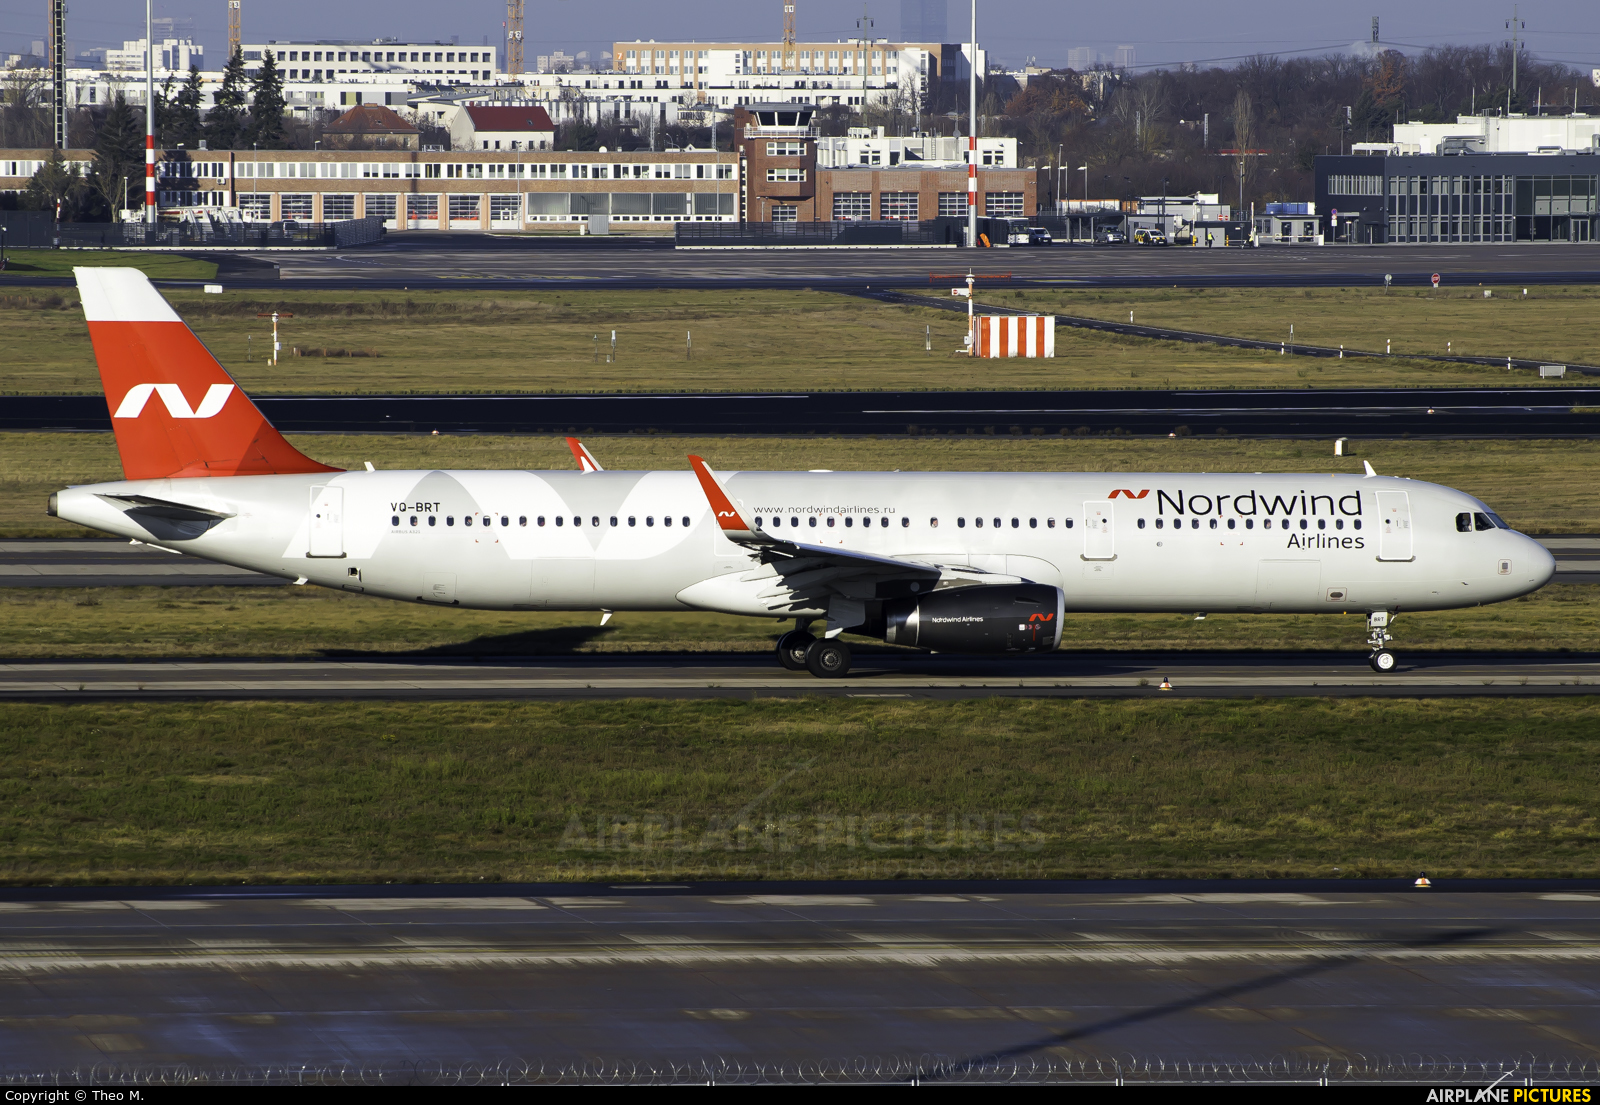 Nordwind Airlines VQ-BRT aircraft at Berlin - Brandenburg